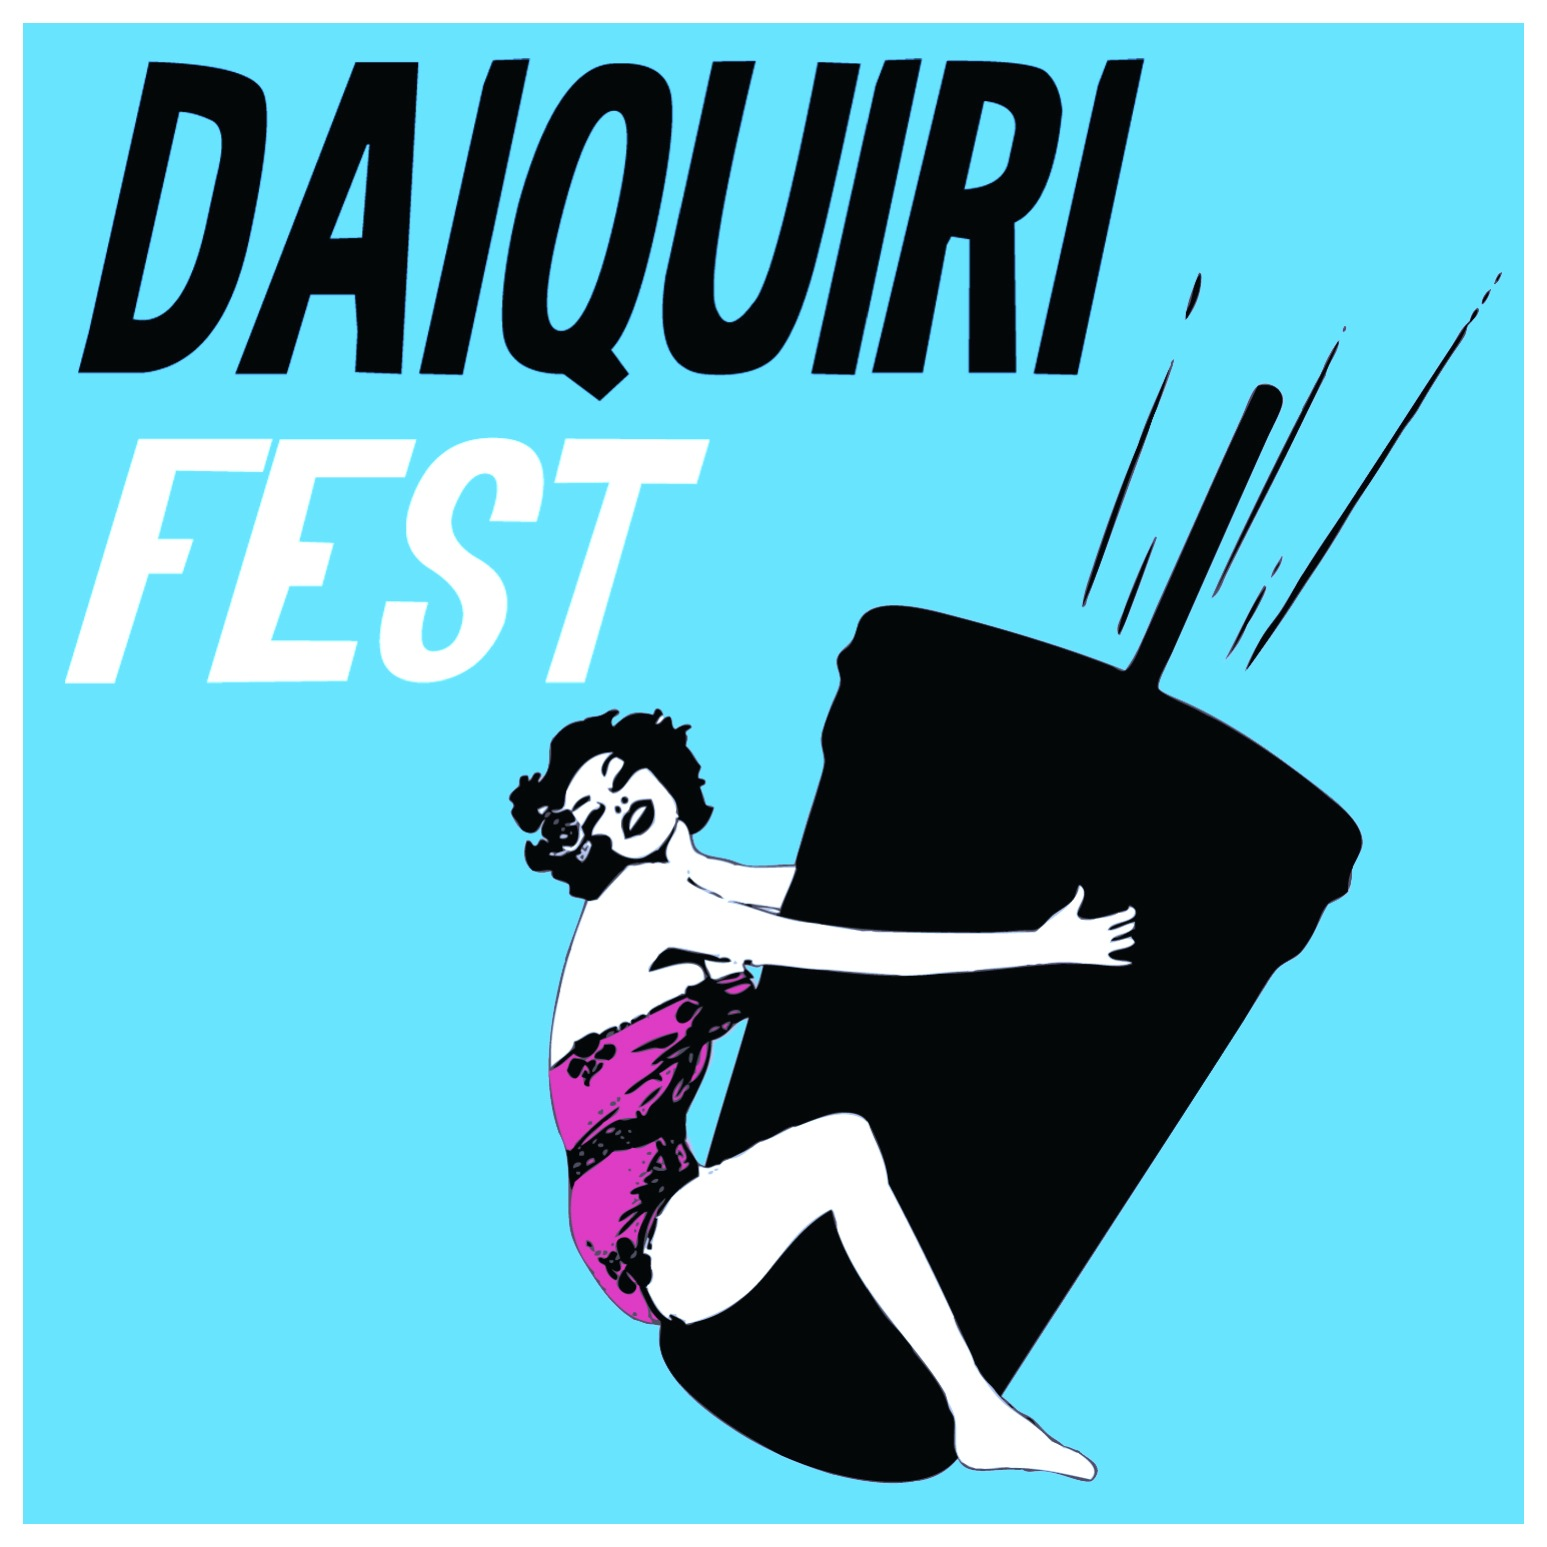 Logo Design, Promotions and Merchandise Fabrication for the New Orleans Daiquiri Festival